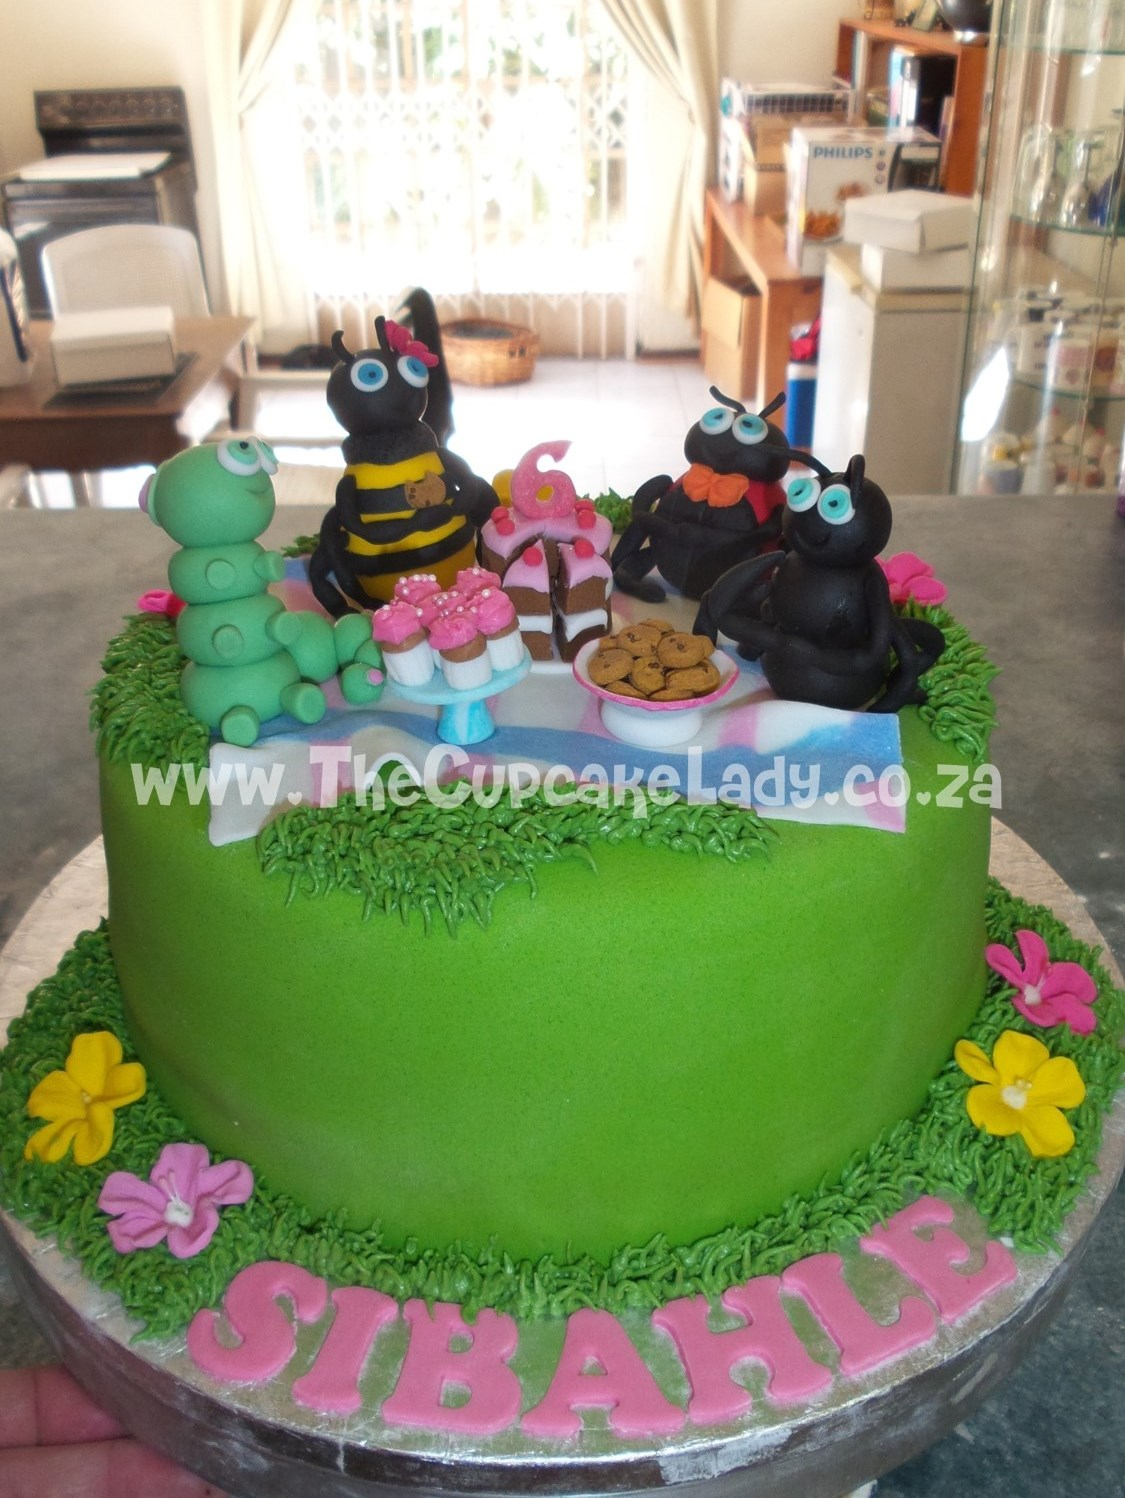 layers of vanilla cake & pink velvet cake, cream cheese icing, caramel icing, handmade sugar paste bugs picnic. Sugar paste cake, cupcakes, cookies and the plates